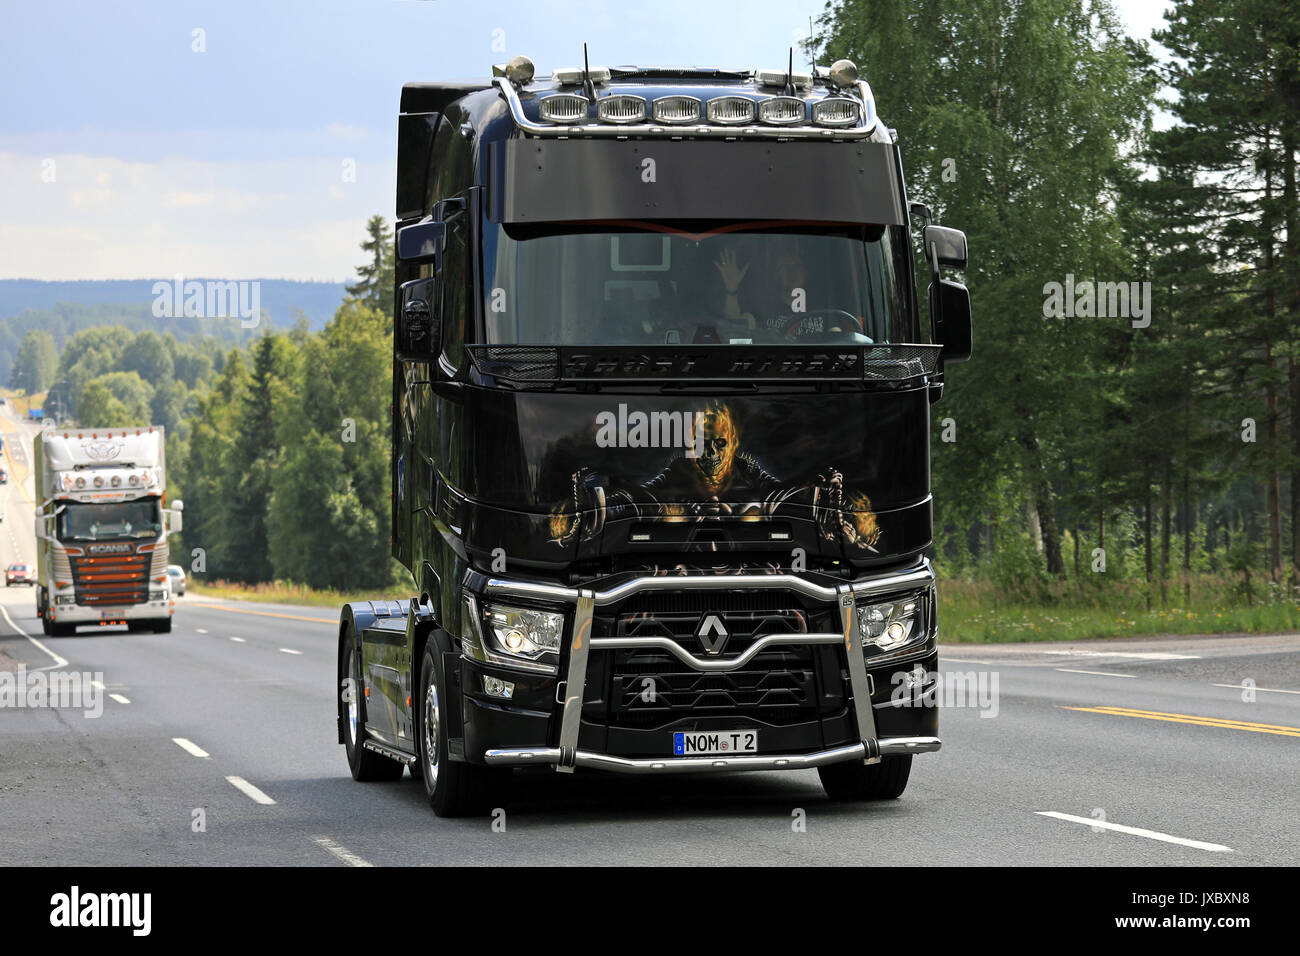 IKAALINEN, FINLAND - AUGUST 10, 2017: Renault Trucks T Ghostrider takes part in the truck convoy to the annual trucking event Power Truck Show 2017 in - Stock Image